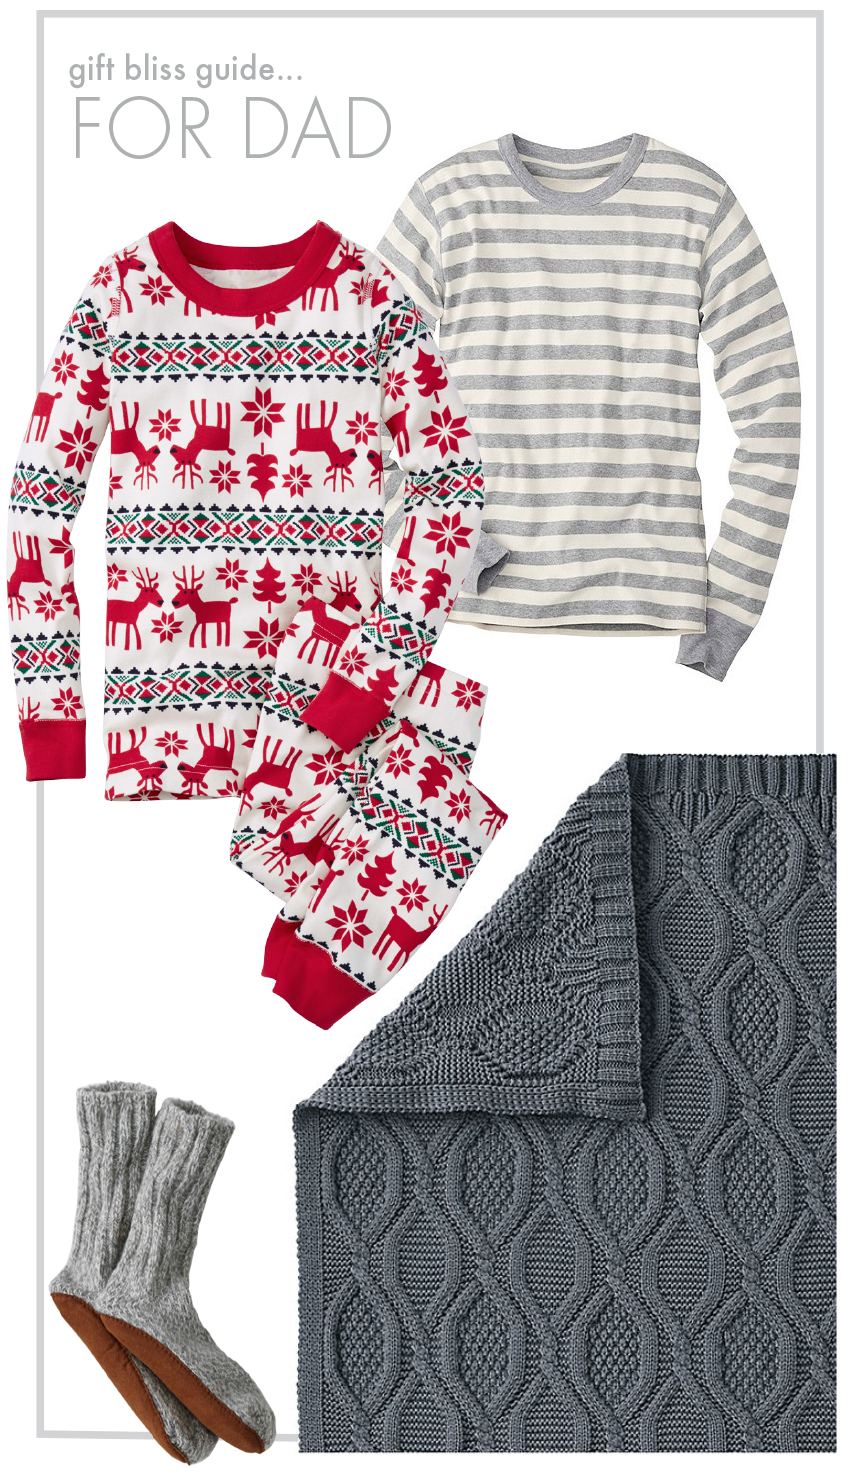 Cozy Comfy Sleep Gift Guide For Dad - Hanna Andersson